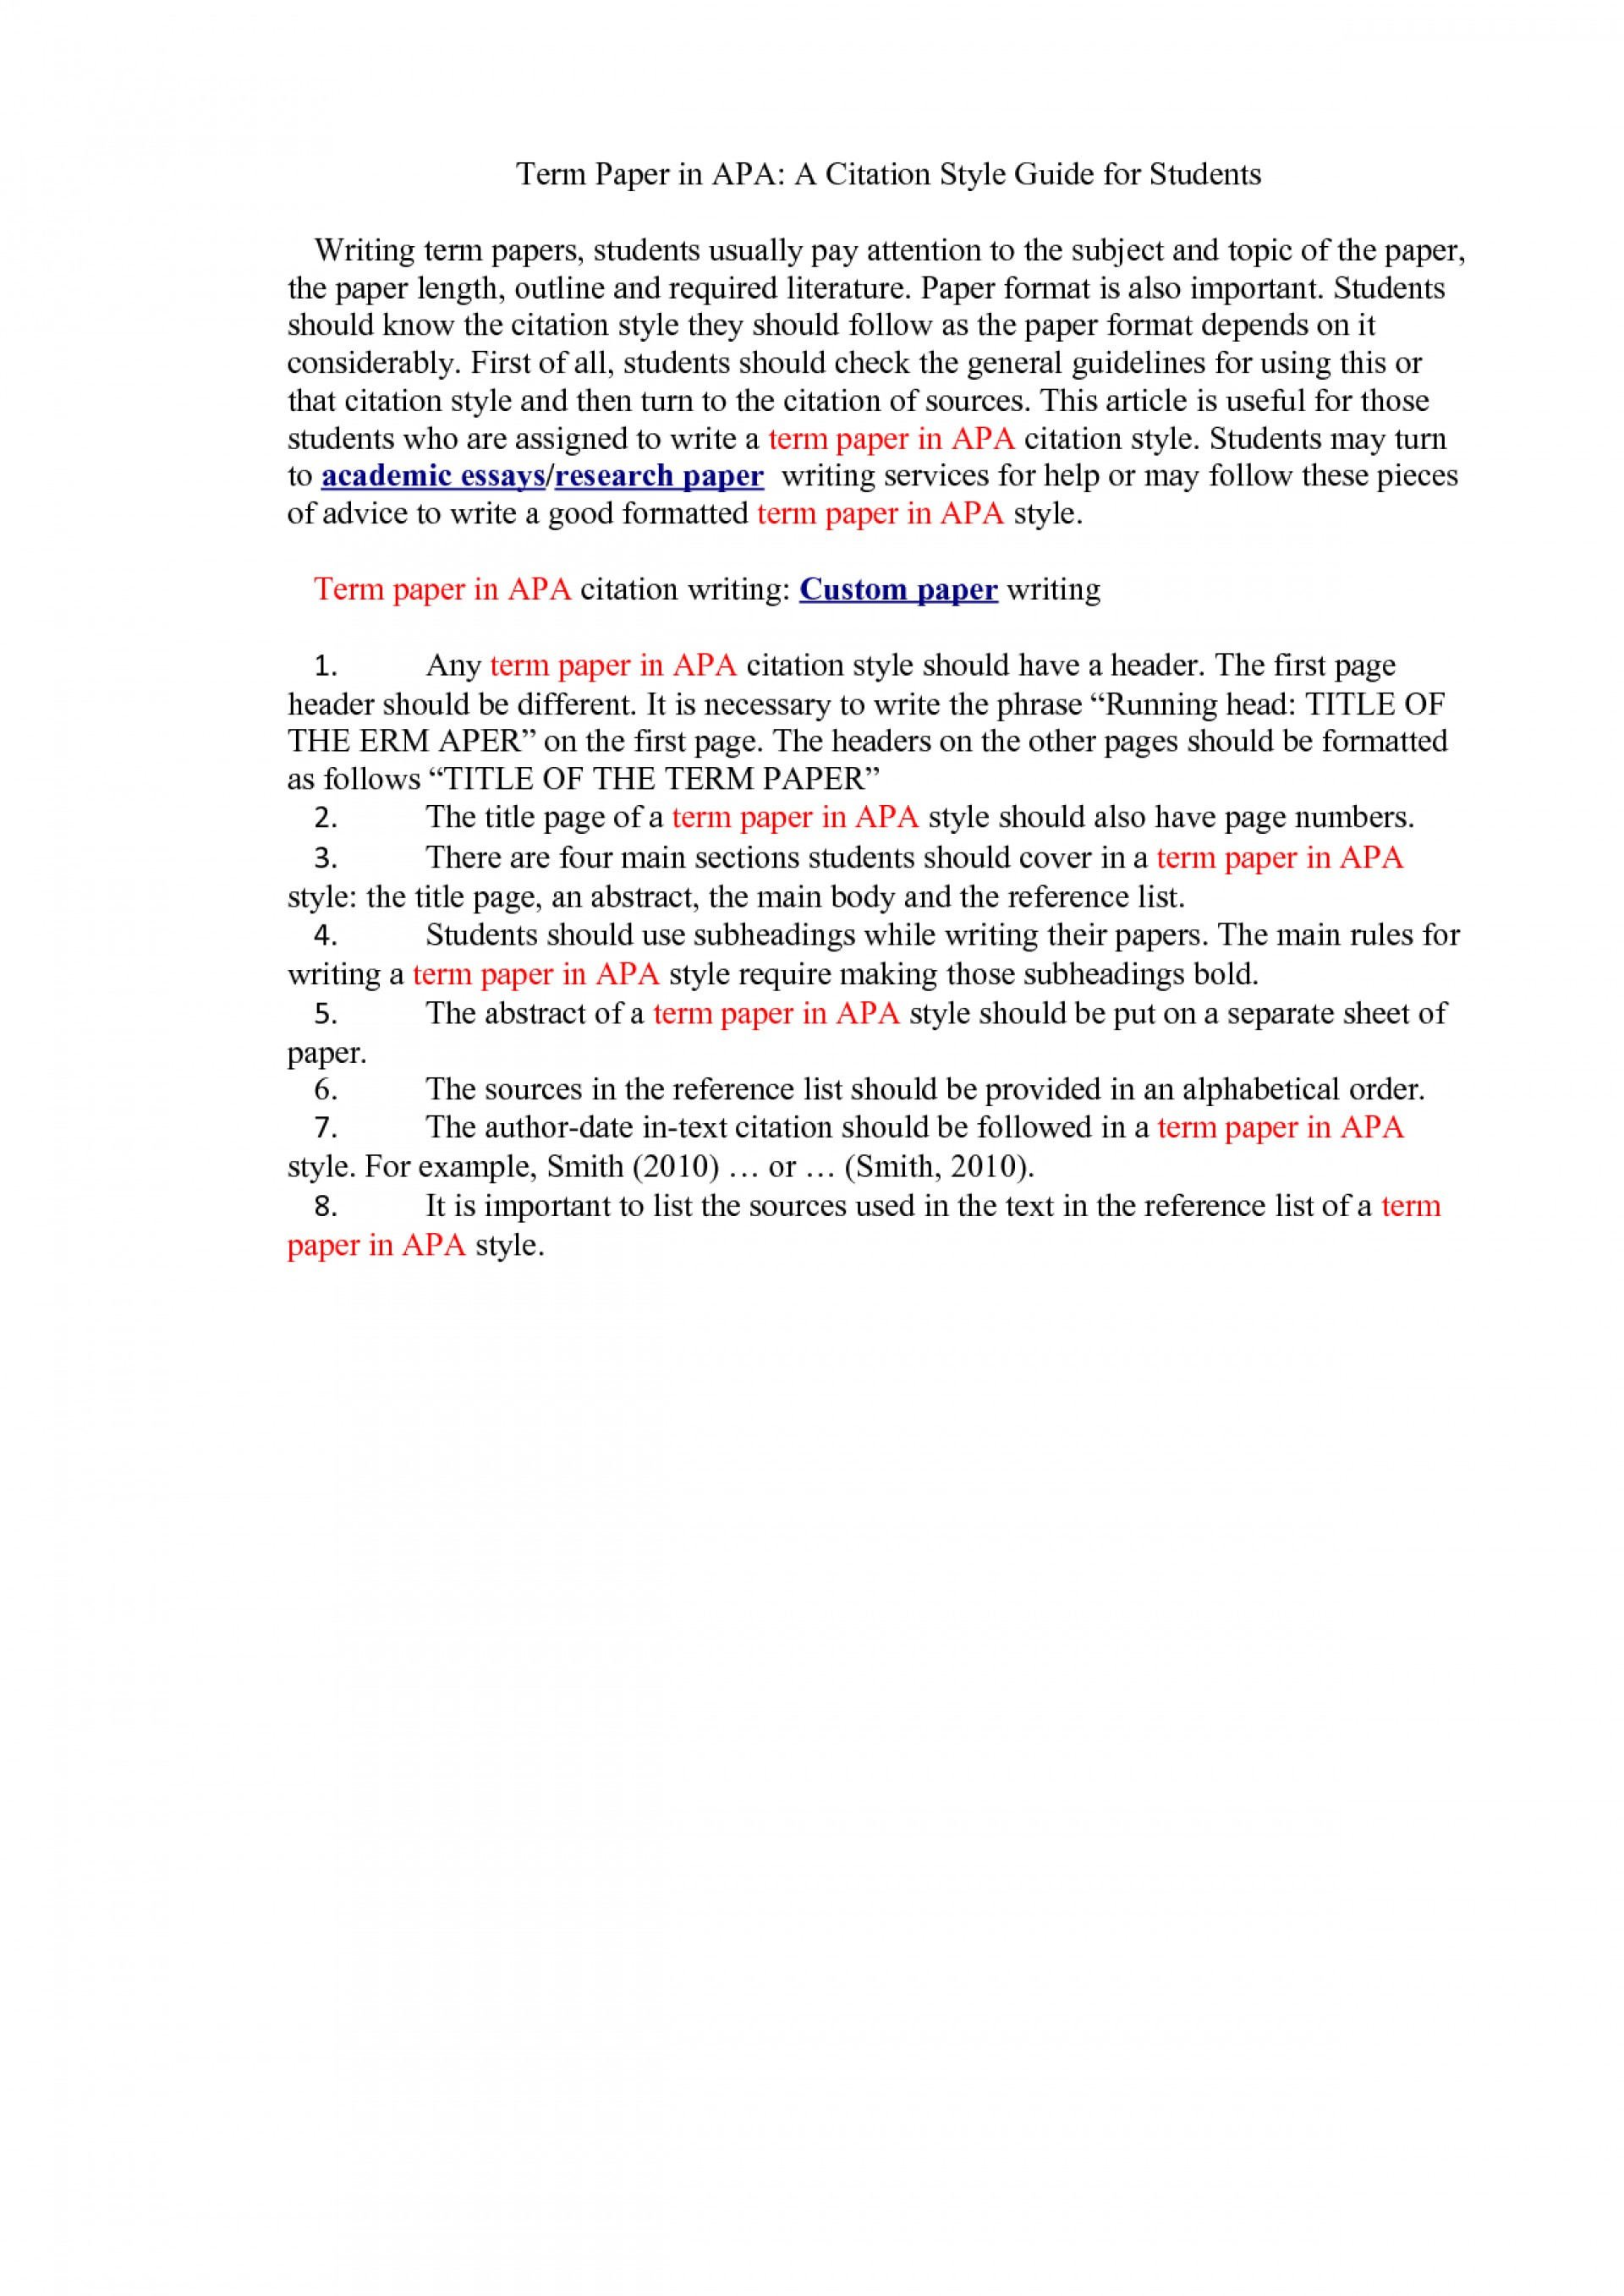 012 Essay Citation Mla Examples L Example How To Quote An Article Impressive In Reference Apa Title Online 1920